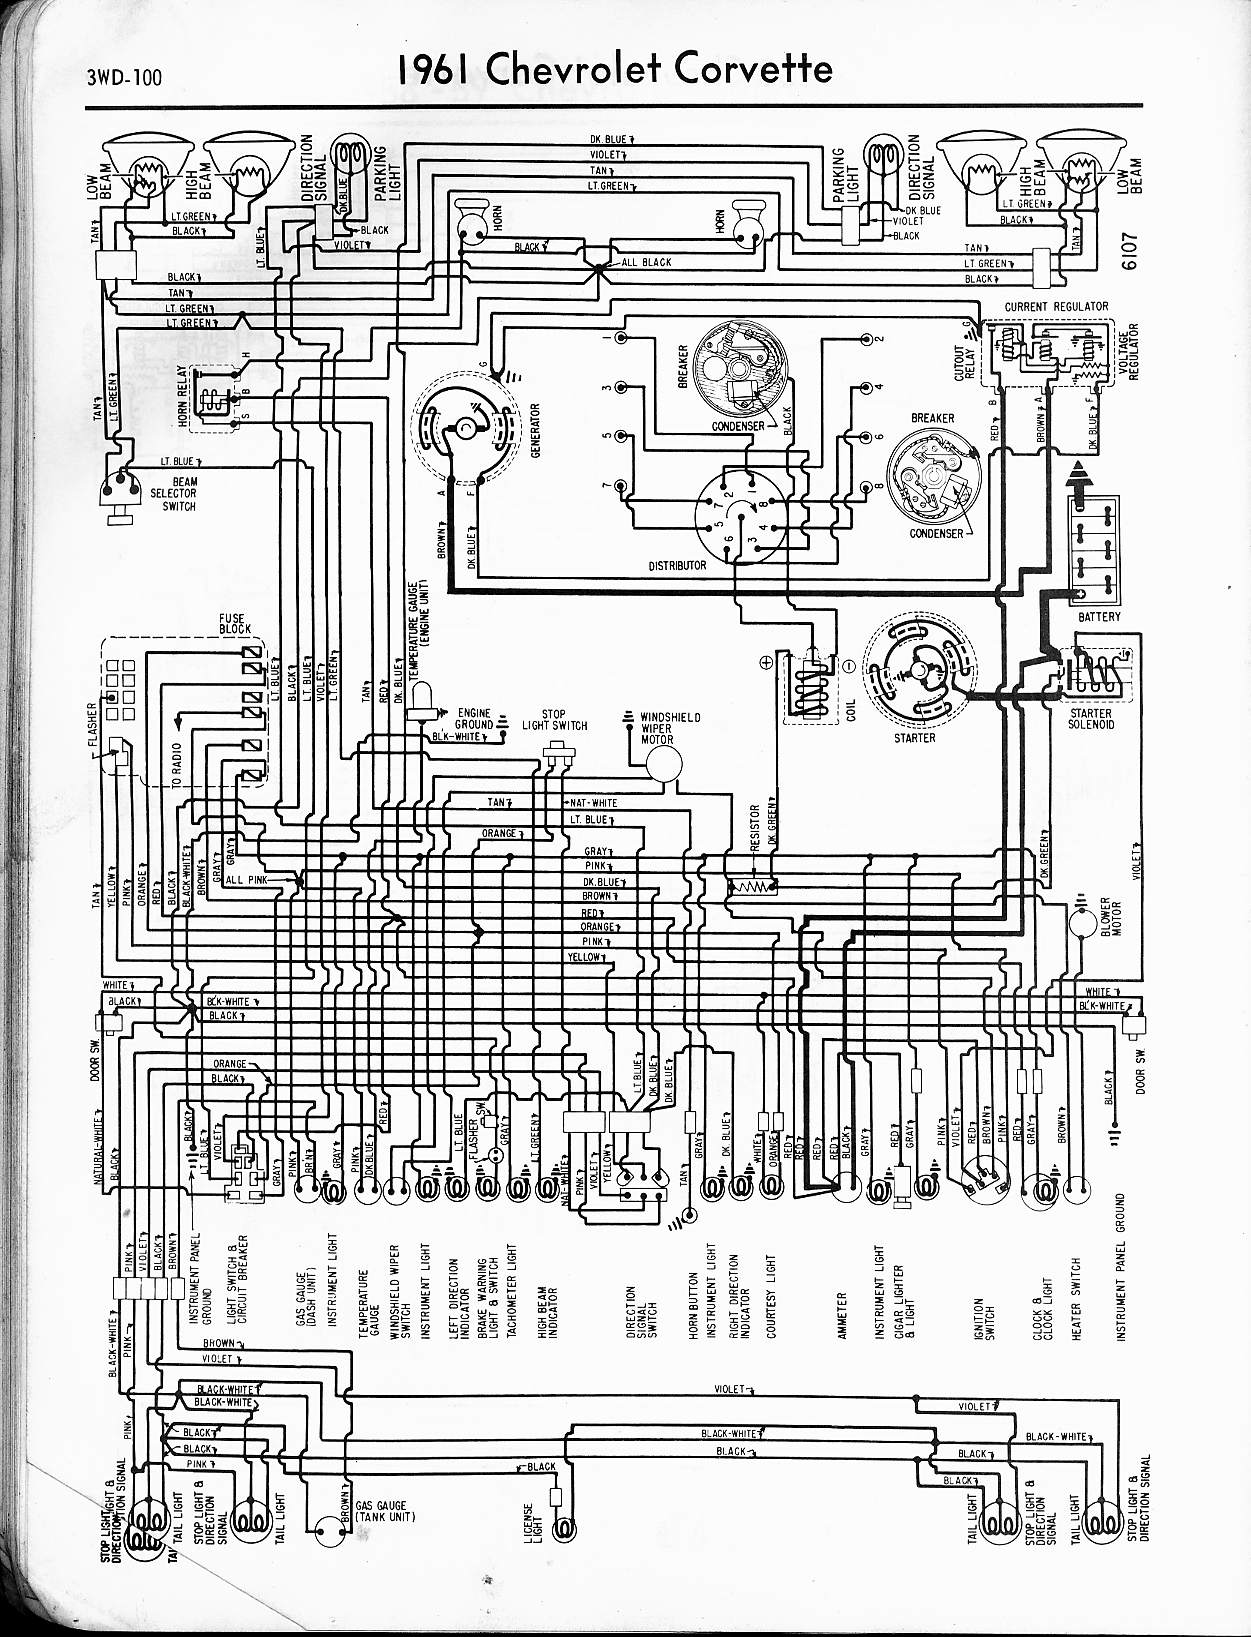 57 65 Chevy Wiring Diagrams 63 Impala Wiring Diagram 1961 Chevy Impala Wiring  Diagram